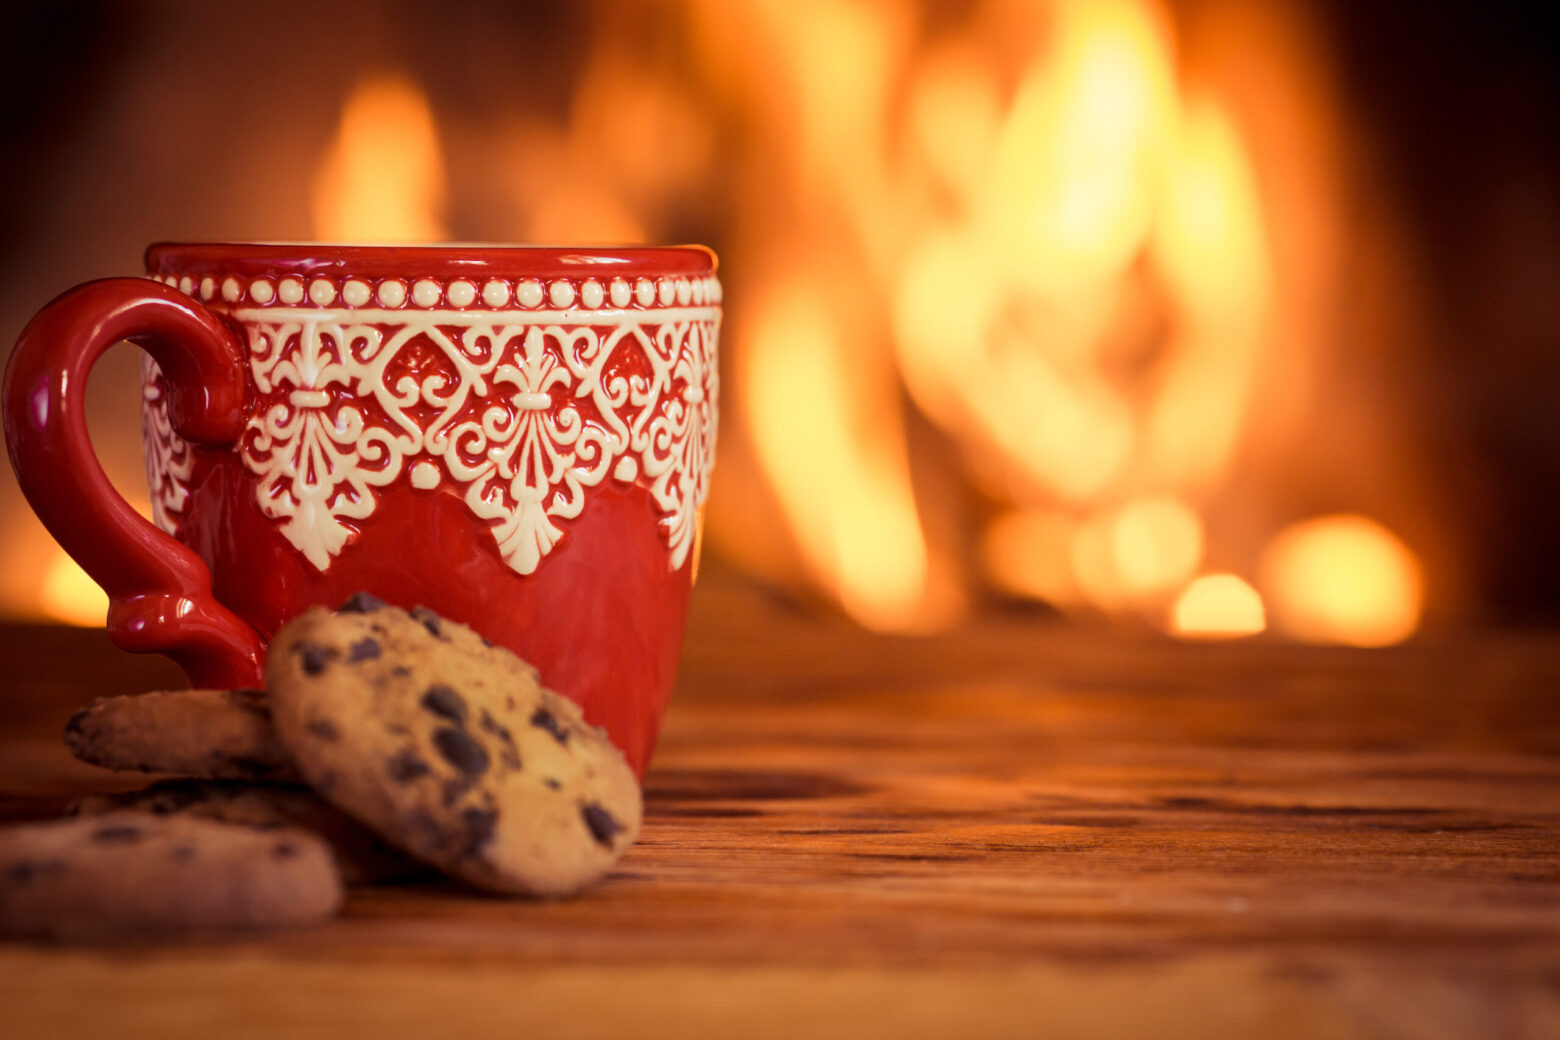 Red and white Christmas mug and chocolate chip cookie near the fireplace.